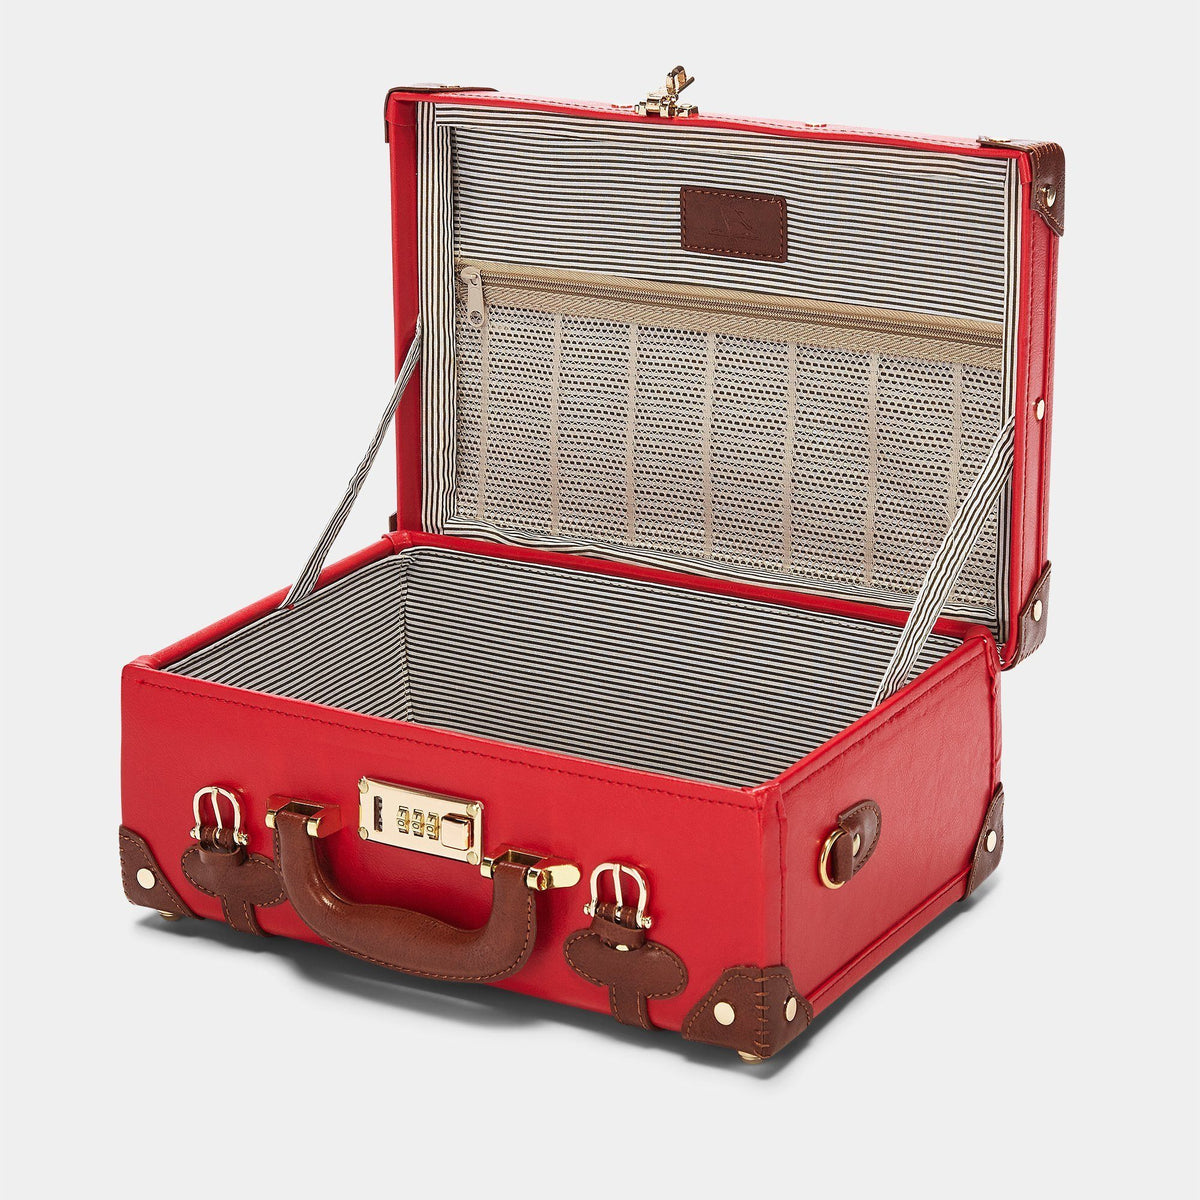 The Entrepreneur Briefcase in Red - Vintage-Inspired Vegan Luggage - Interior Front